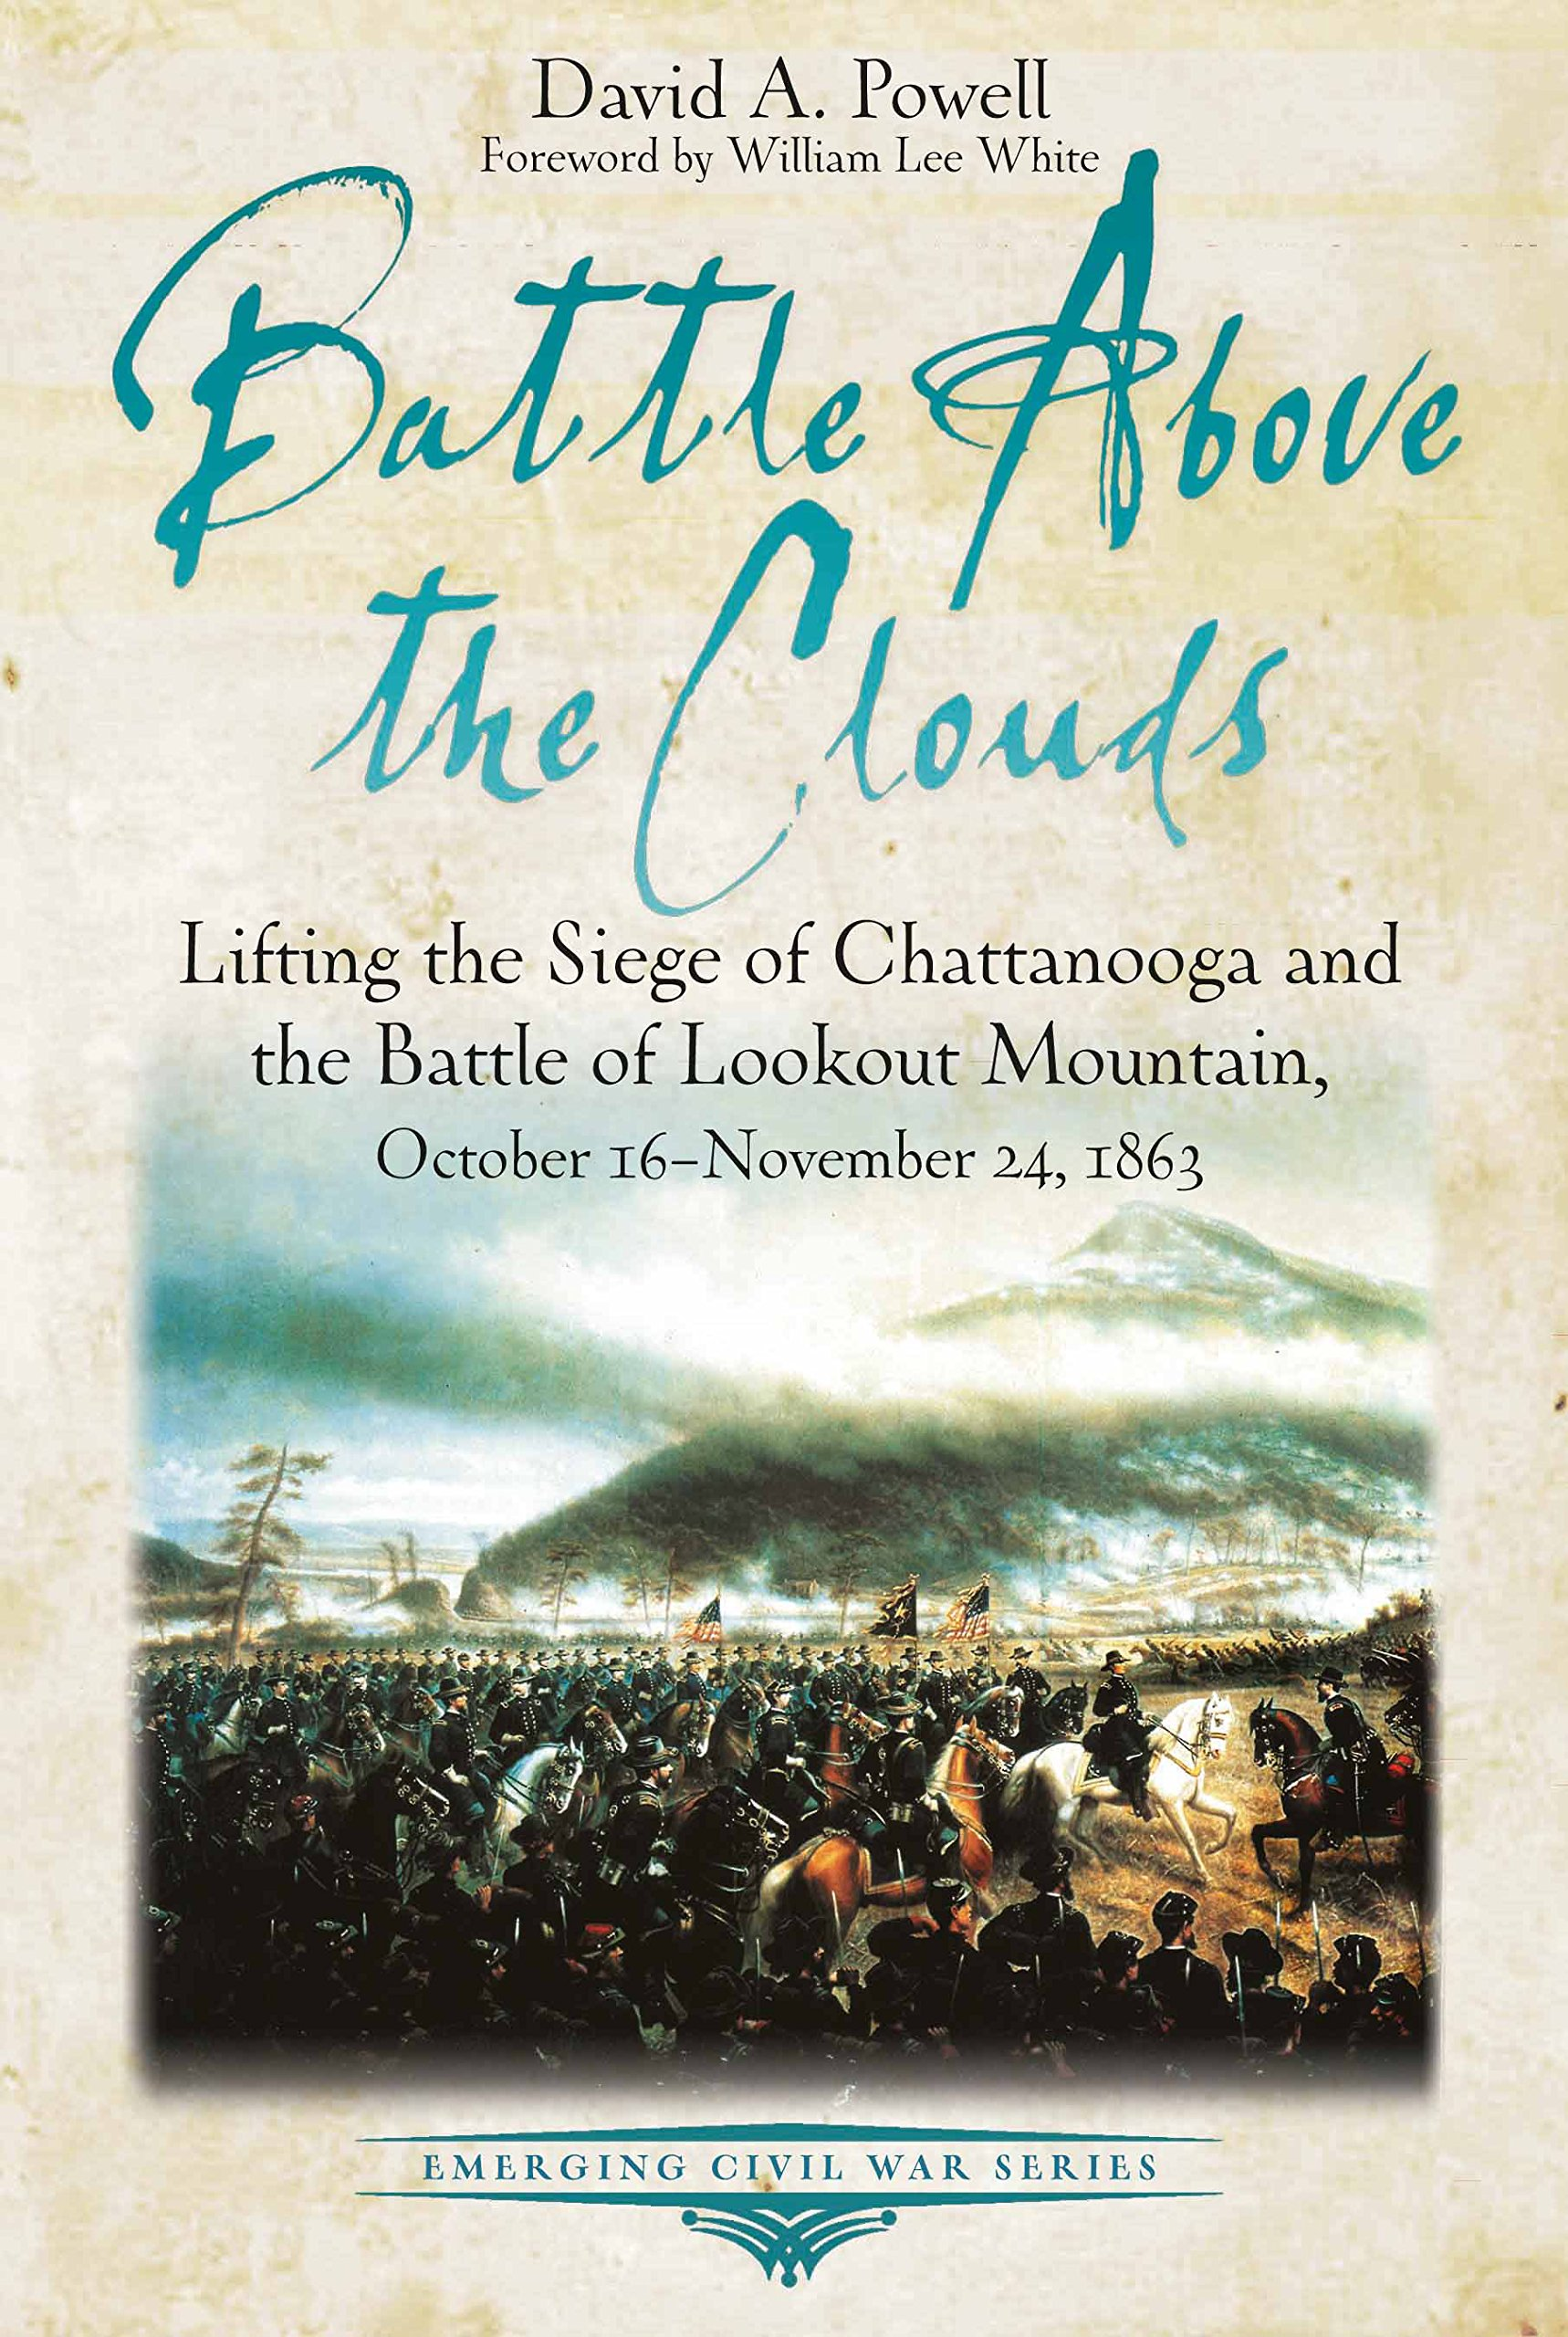 Battle Above the Clouds: Lifting the Siege of Chattanooga and the Battle of Lookout Mountain, October 16 - November 24, 1863